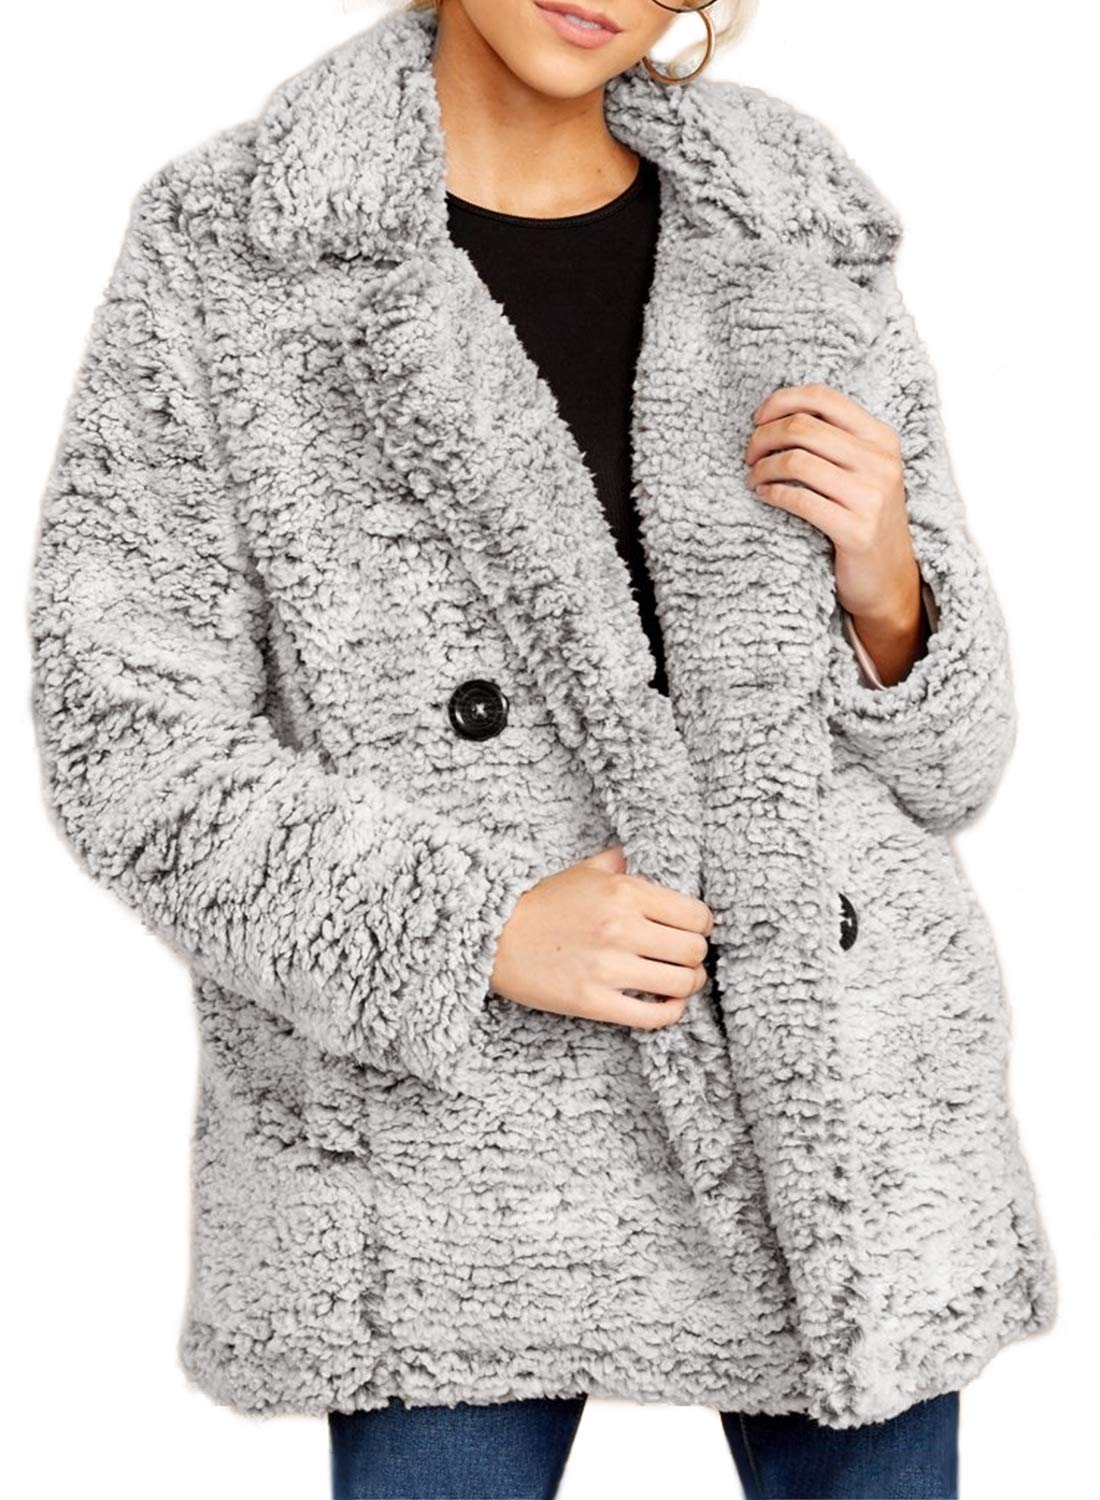 Dokotoo Womens Casual Jackets Solid Winter Oversized V Neck Warm Fashion Lapel Fleece Fuzzy Cardigans Jackets Open Front Button Coats with Pockets Outerwears Gray Small by Dokotoo